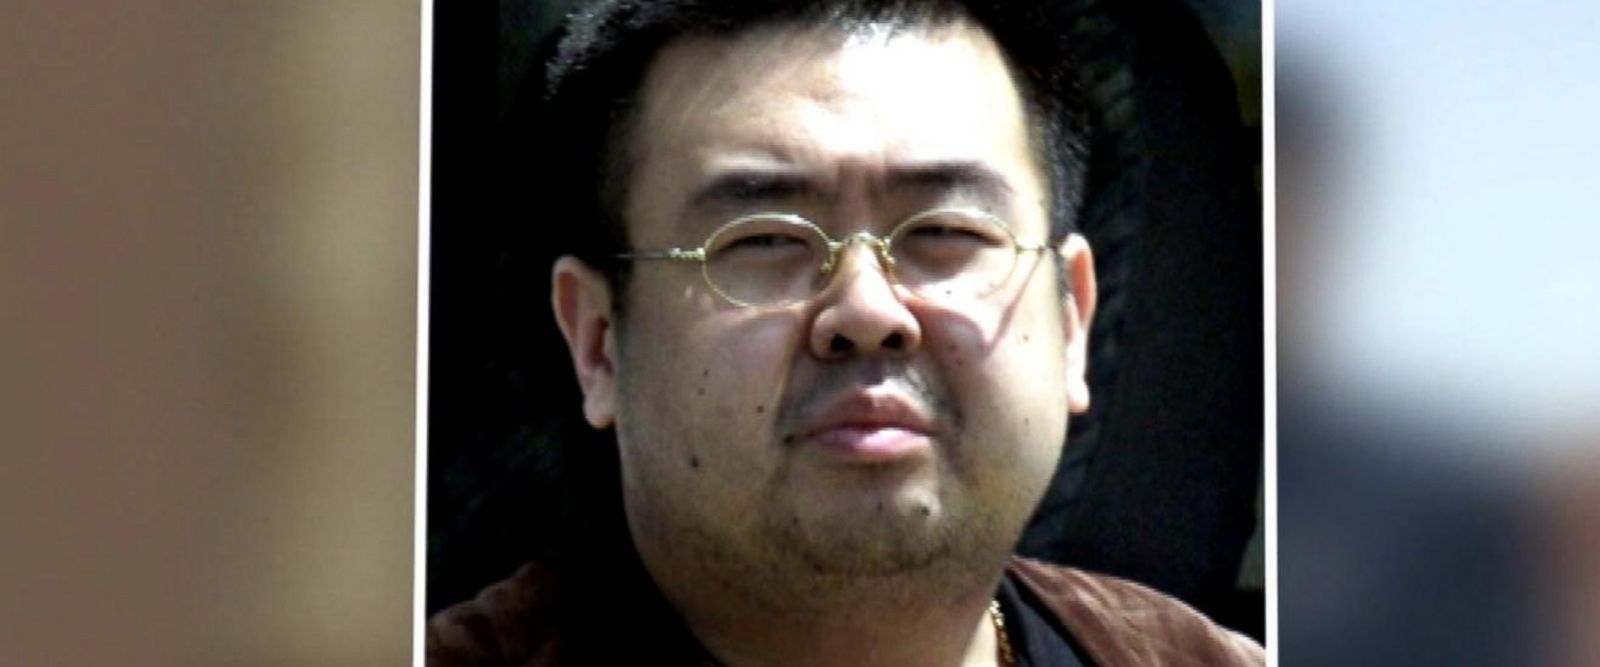 VIDEO: Kim Jong Un's half-brother dies after being smeared with nerve agent at airport: Part 1